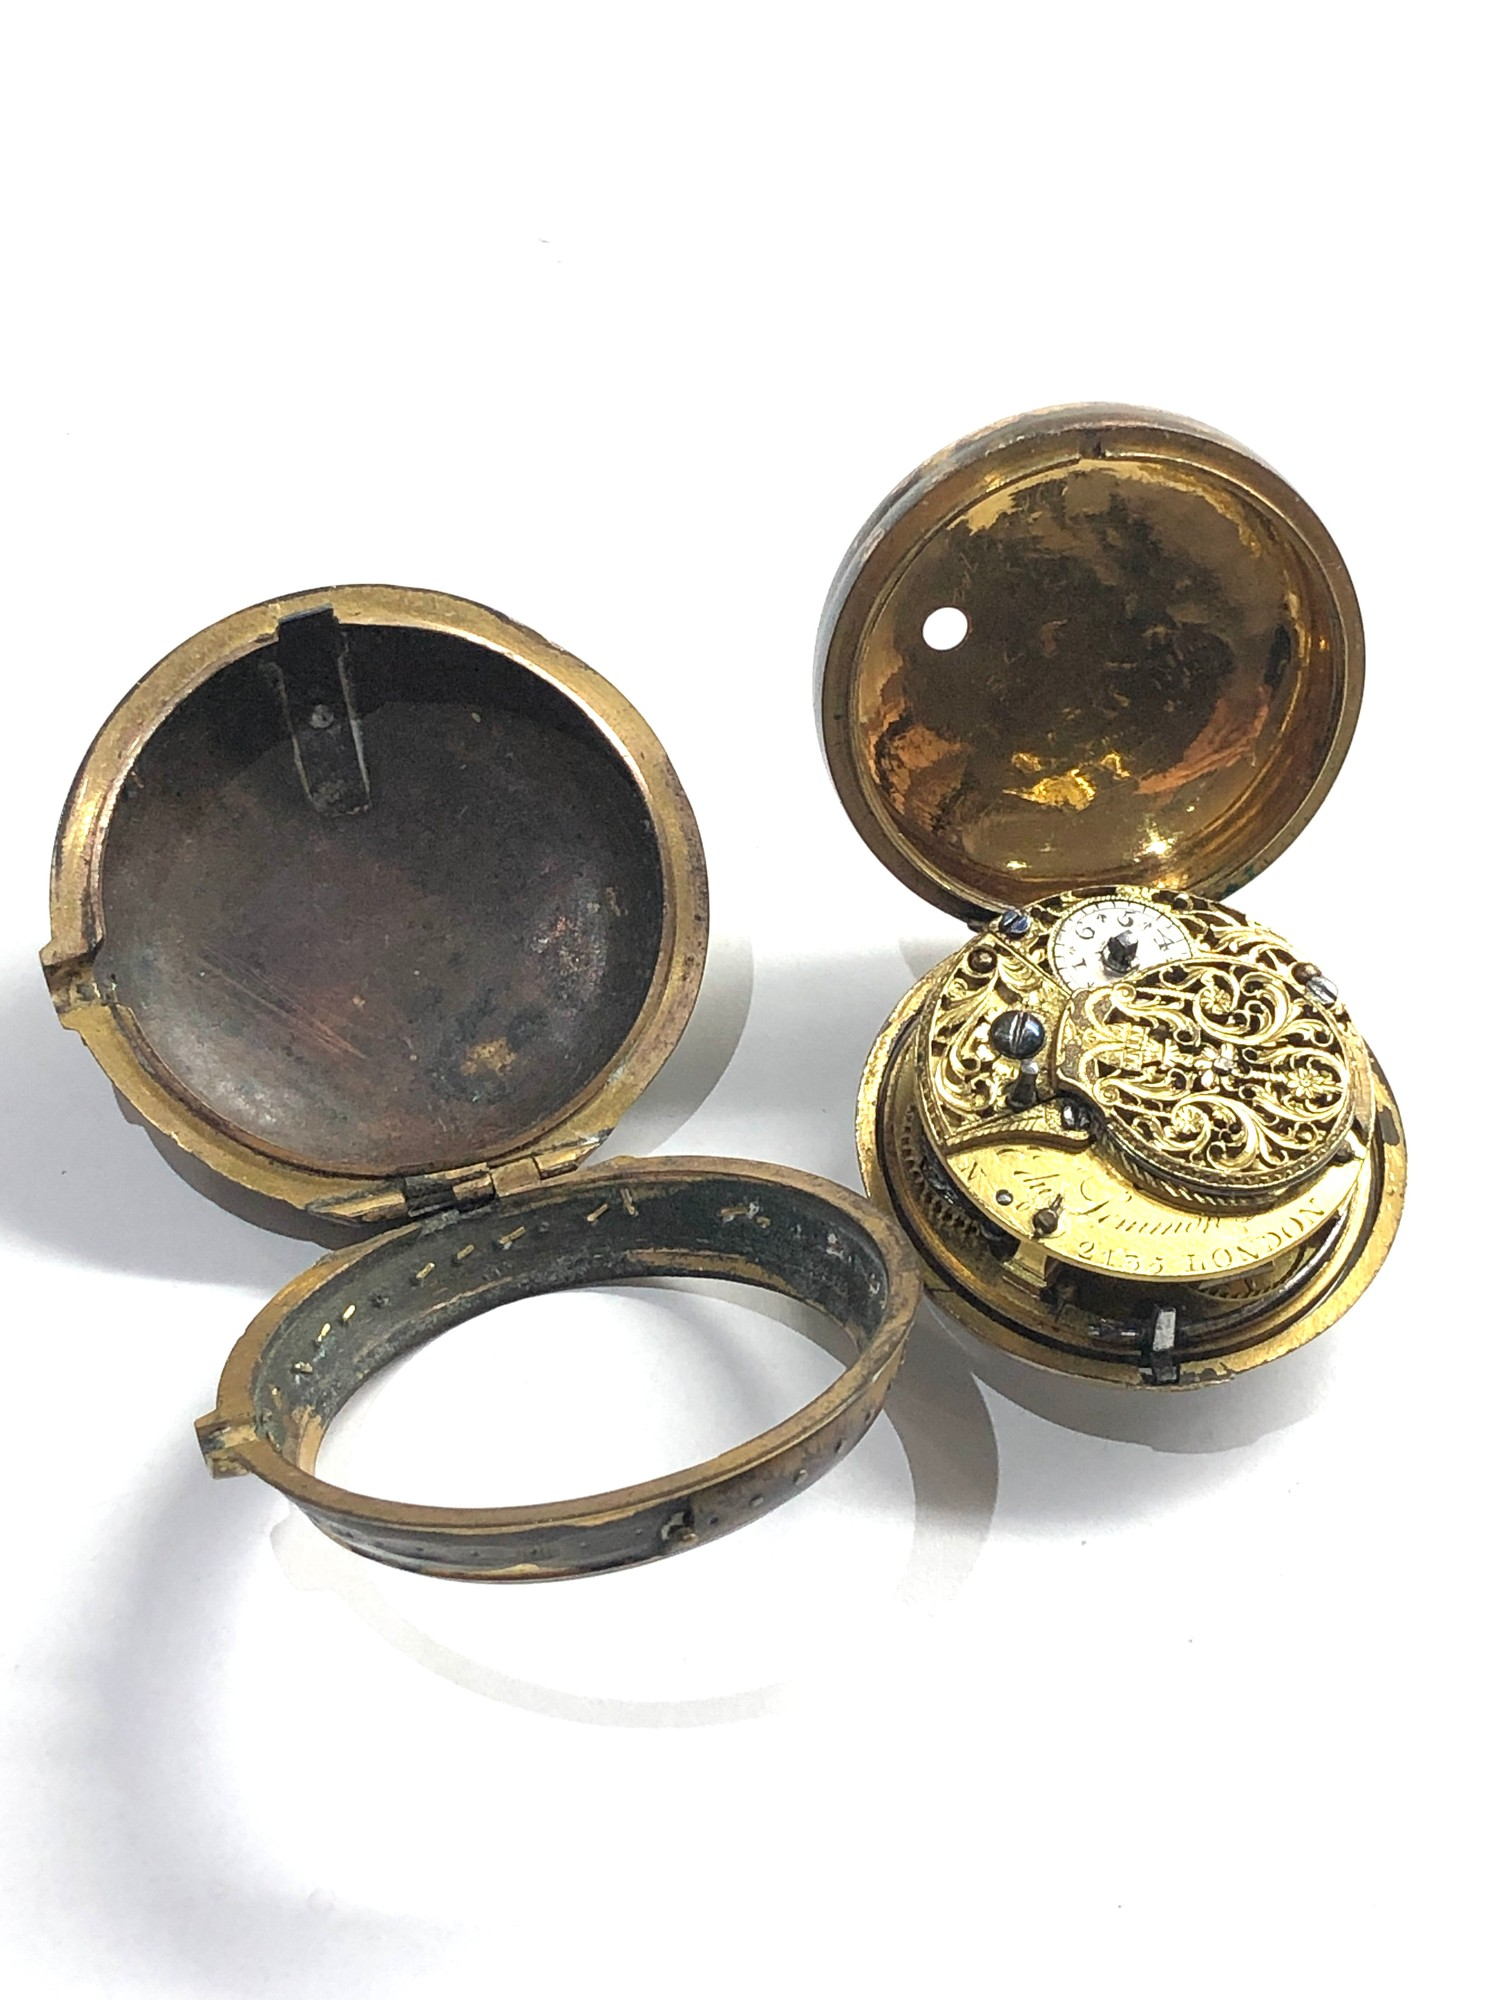 18th century London paircase verge pocket watch the watch does wind and tick dial damaged outer case